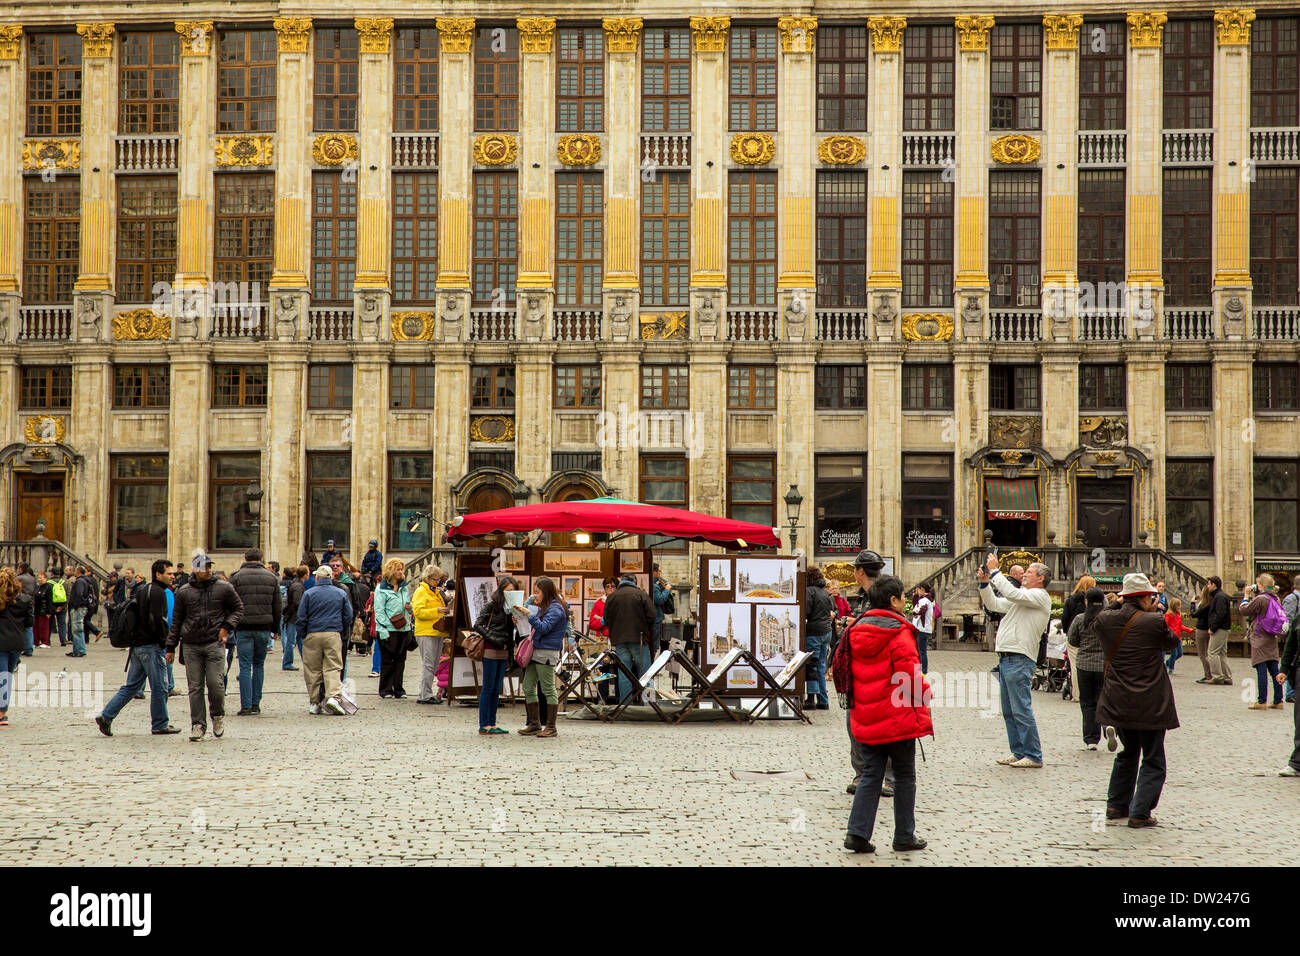 The Grand Place (Grote Markt) is the historical centre of Brussels - Stock Image